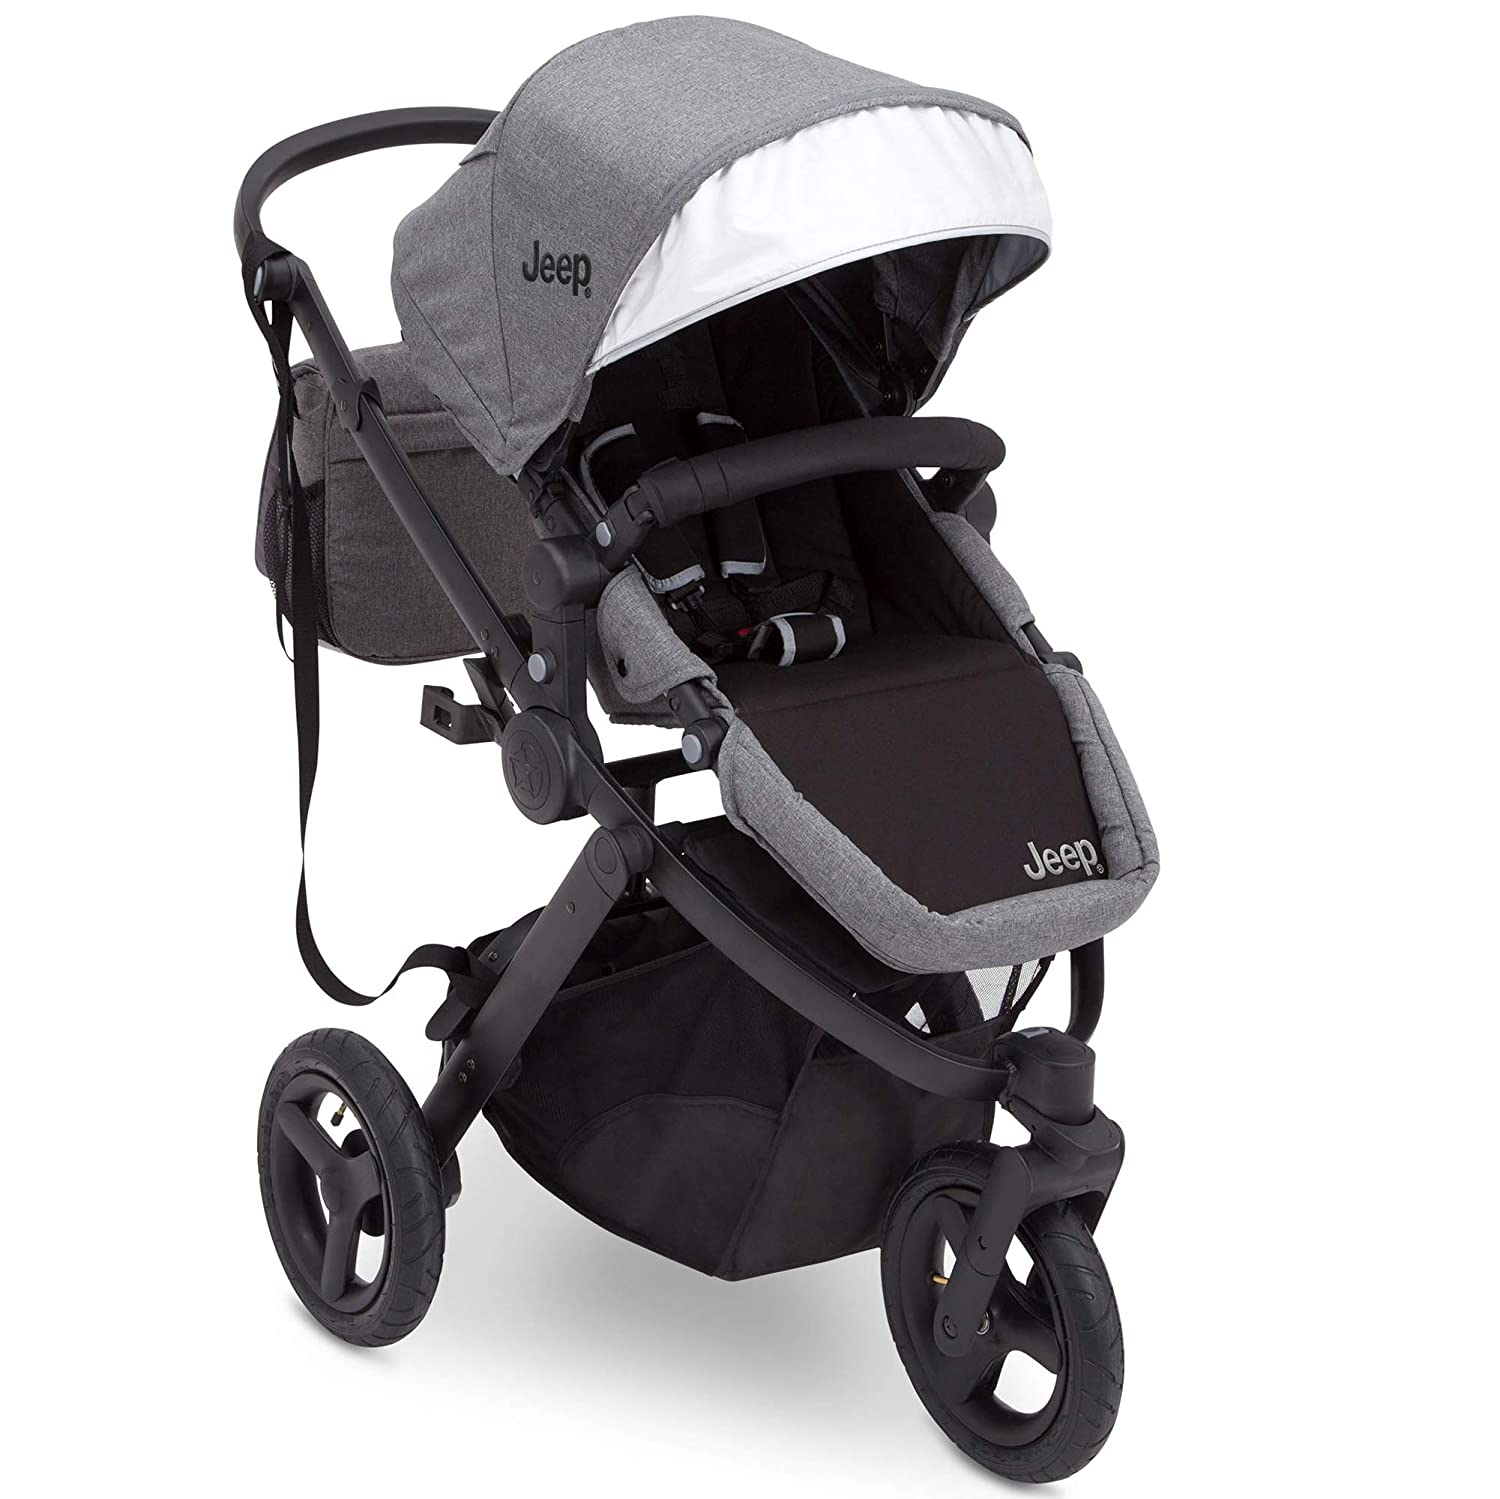 Jogging Stroller All Terrain Baby Jogger Sport Utility JPMA Safety Certified J is for Jeep Brand Grey on Black Frame